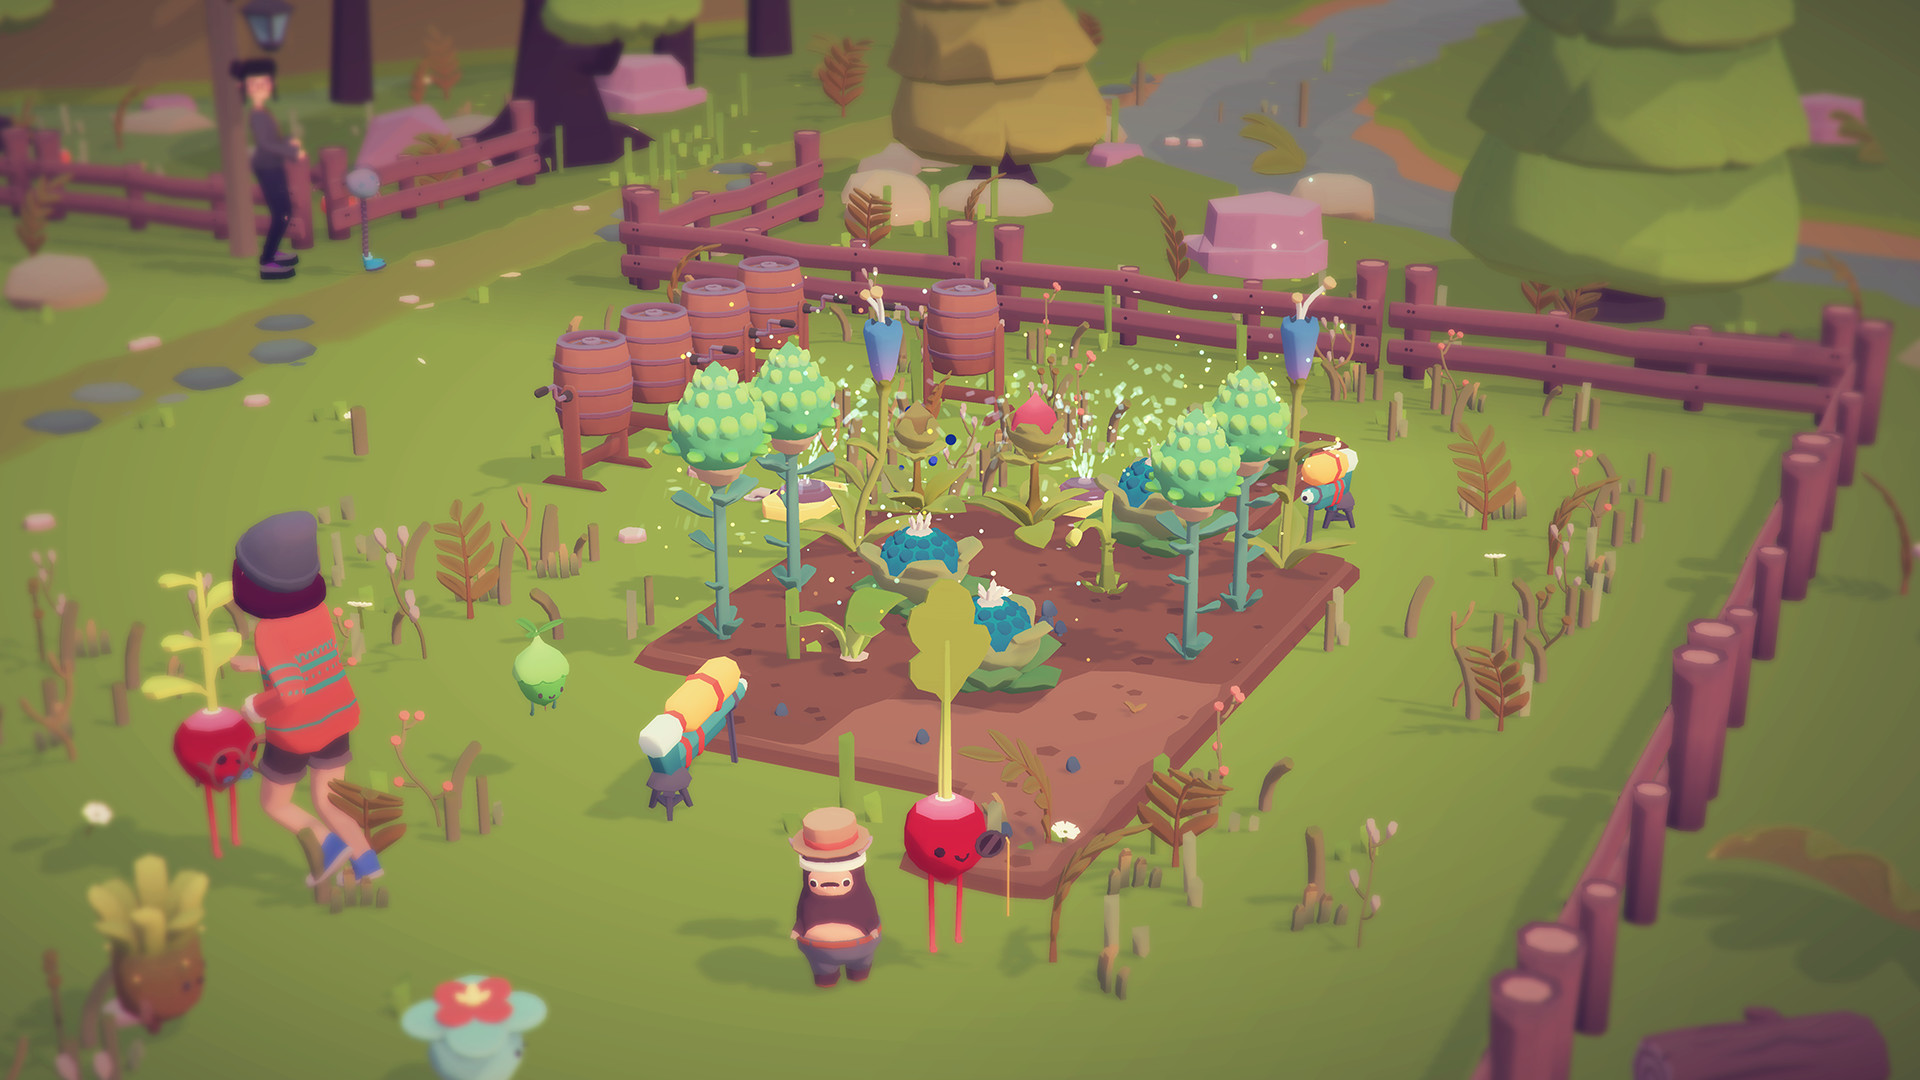 5 Reasons Ooblets Are Actually Terrifying